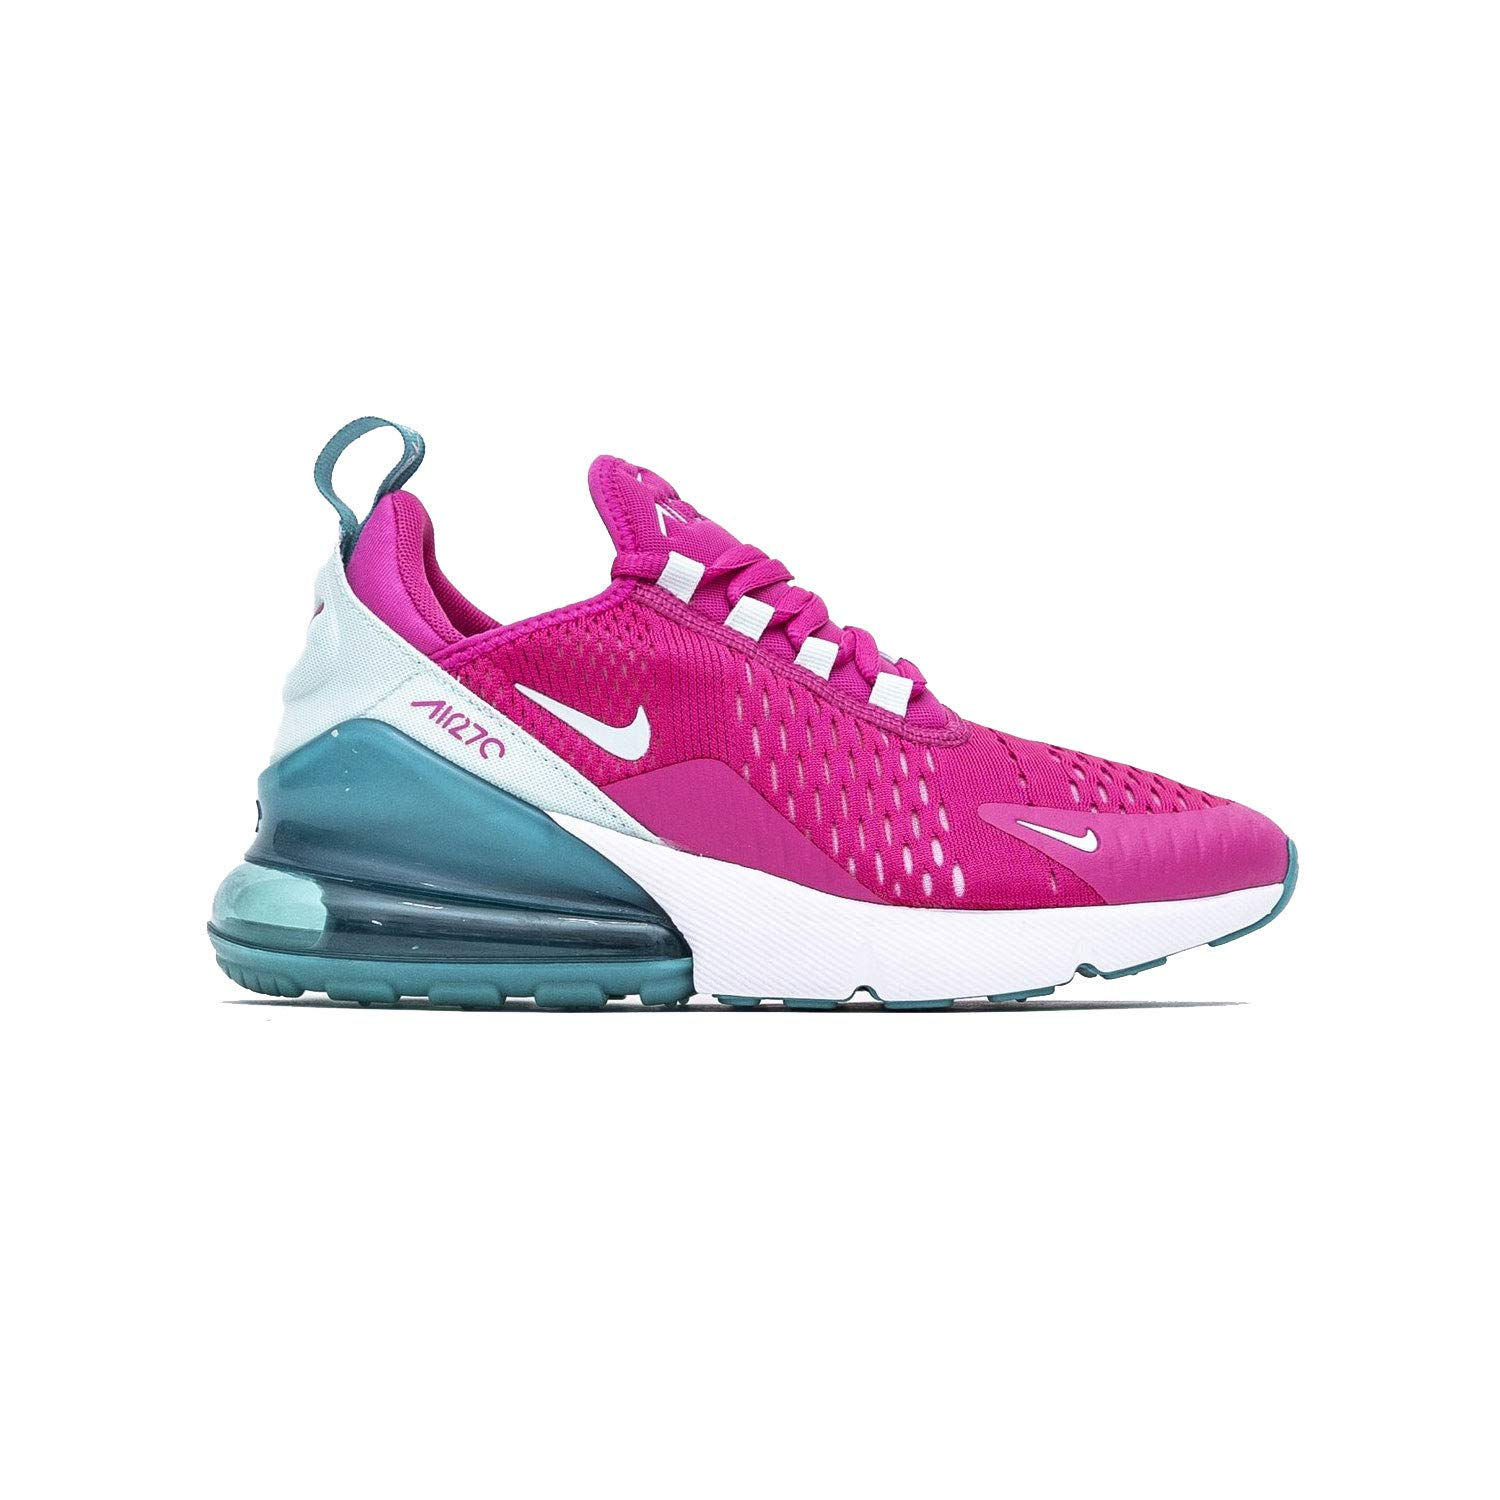 Nike Air Max 270 in pink CI5679 600 | everysize